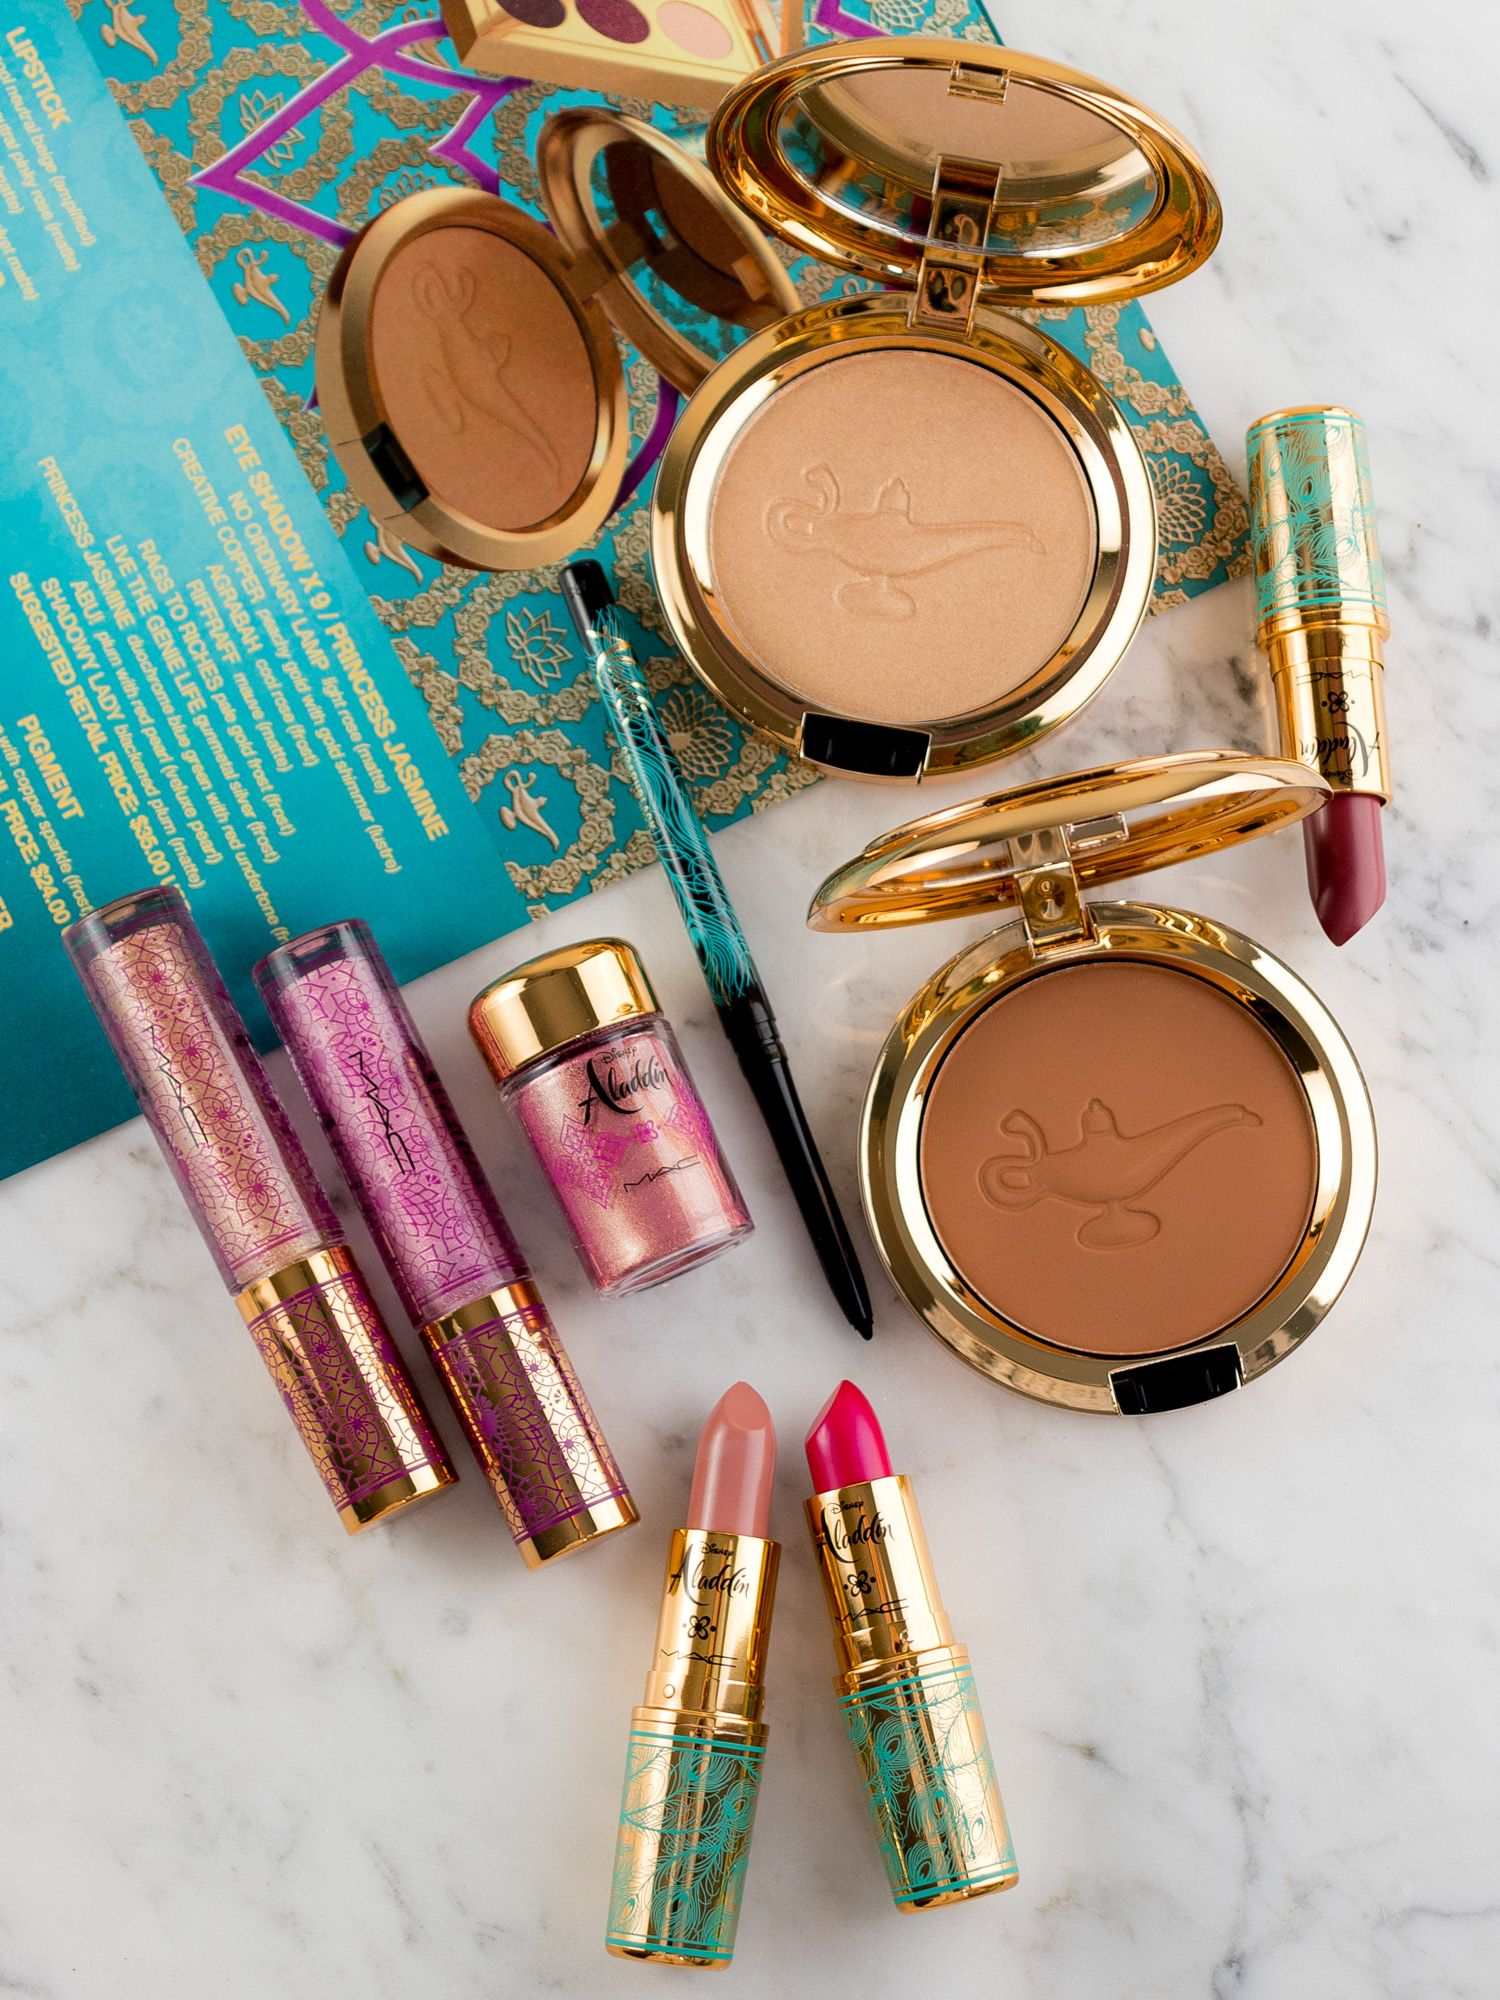 The Disney Aladdin Collection by MAC Cosmetics Makeup